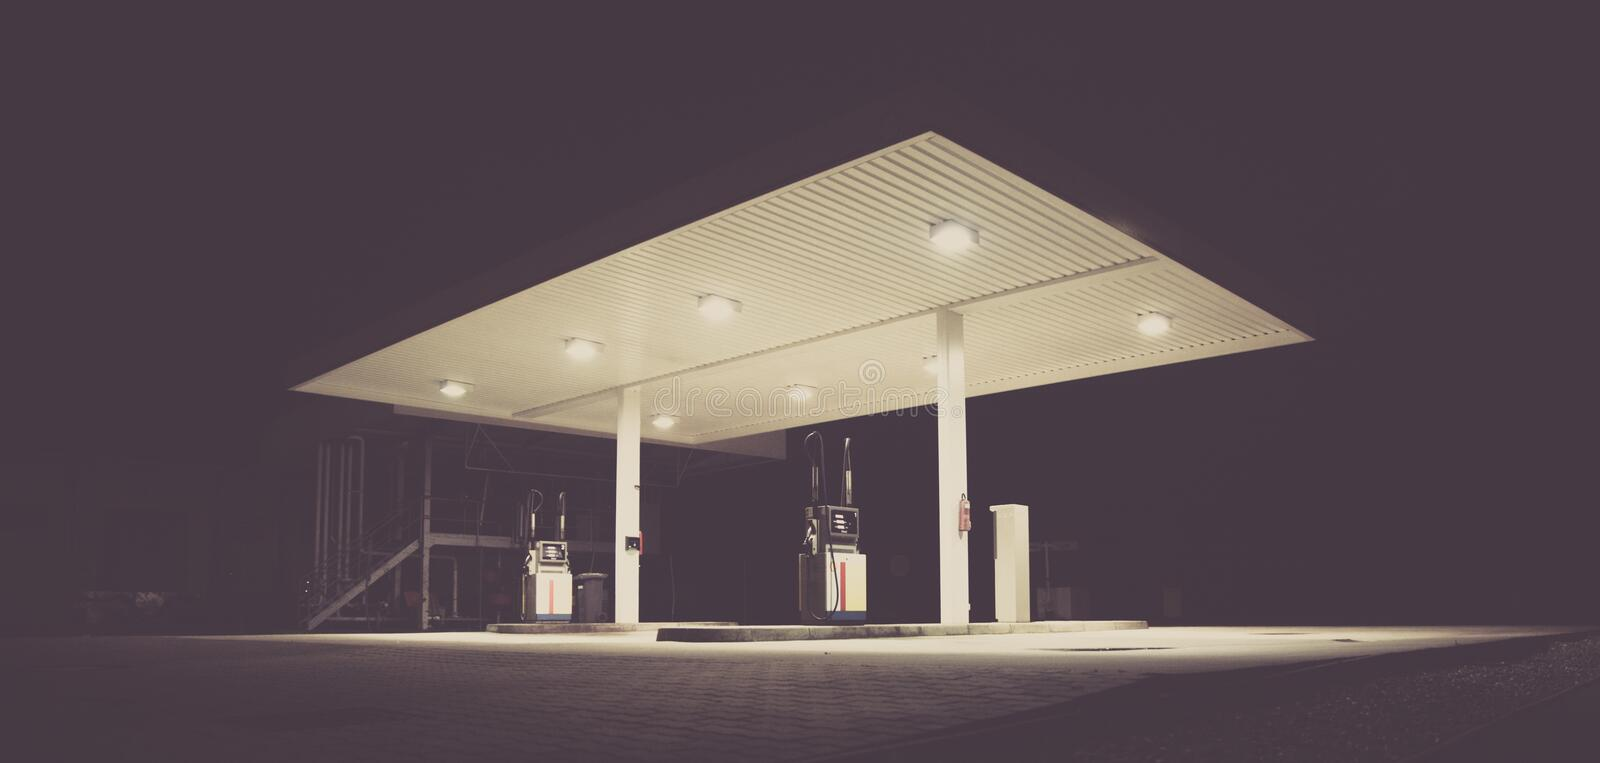 Gasoline Station During Night Time Free Public Domain Cc0 Image